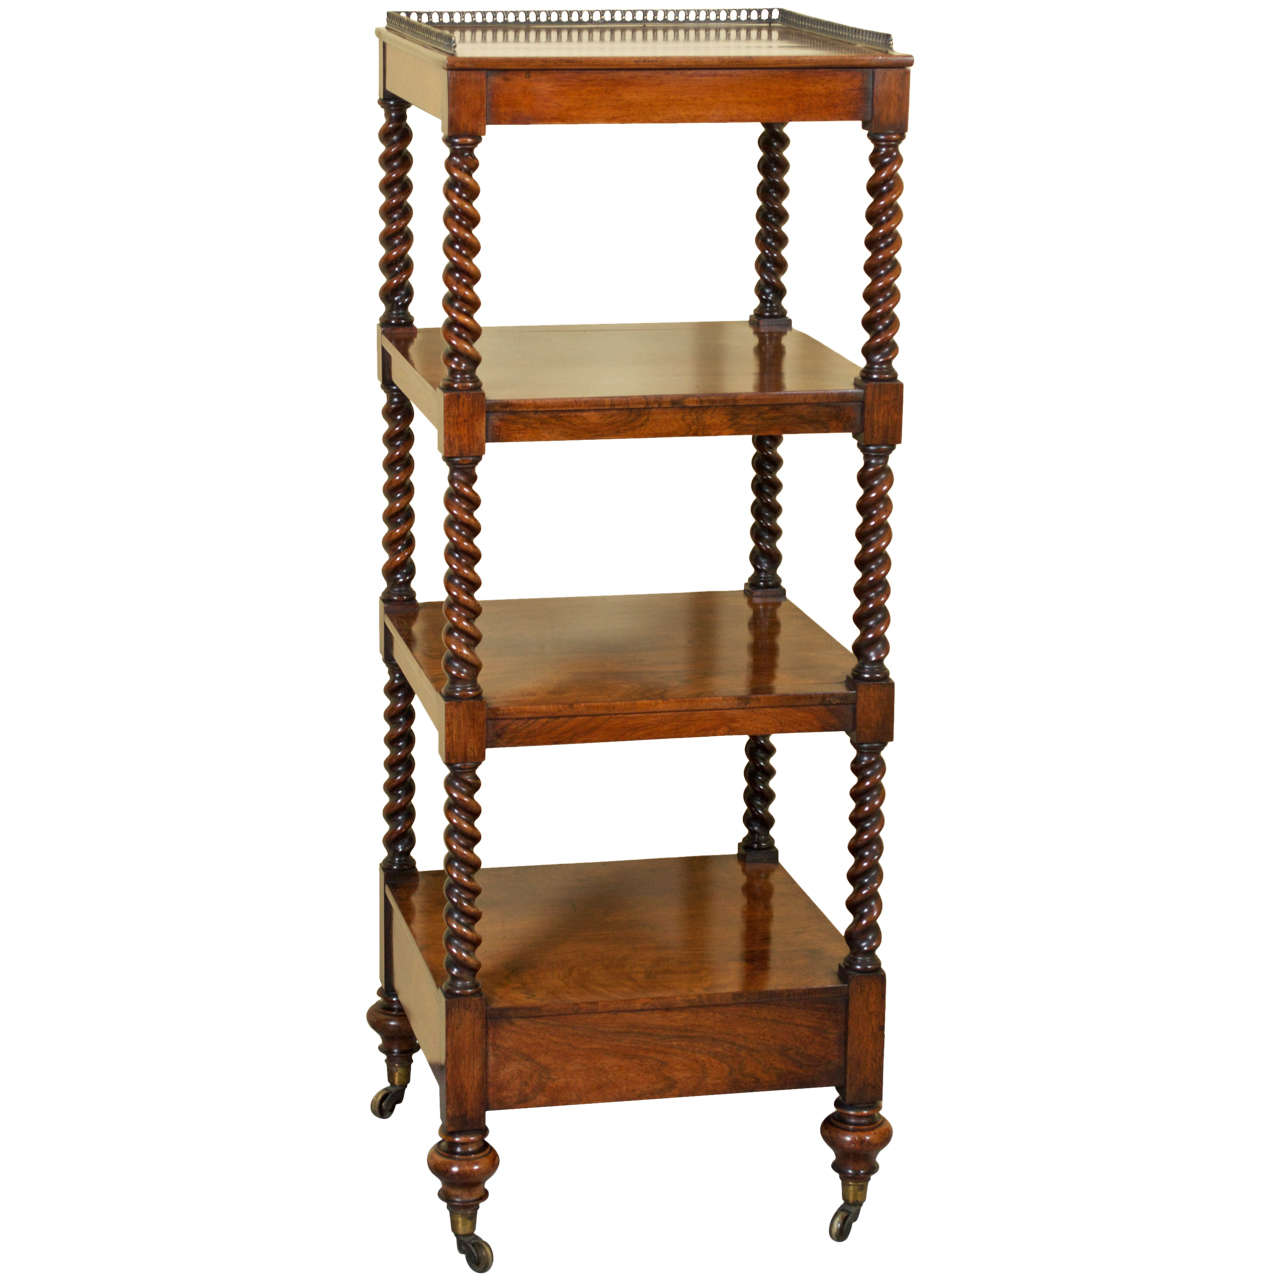 19th Century Victorian Rosewood Whatnot or Etagere at 1stdibs